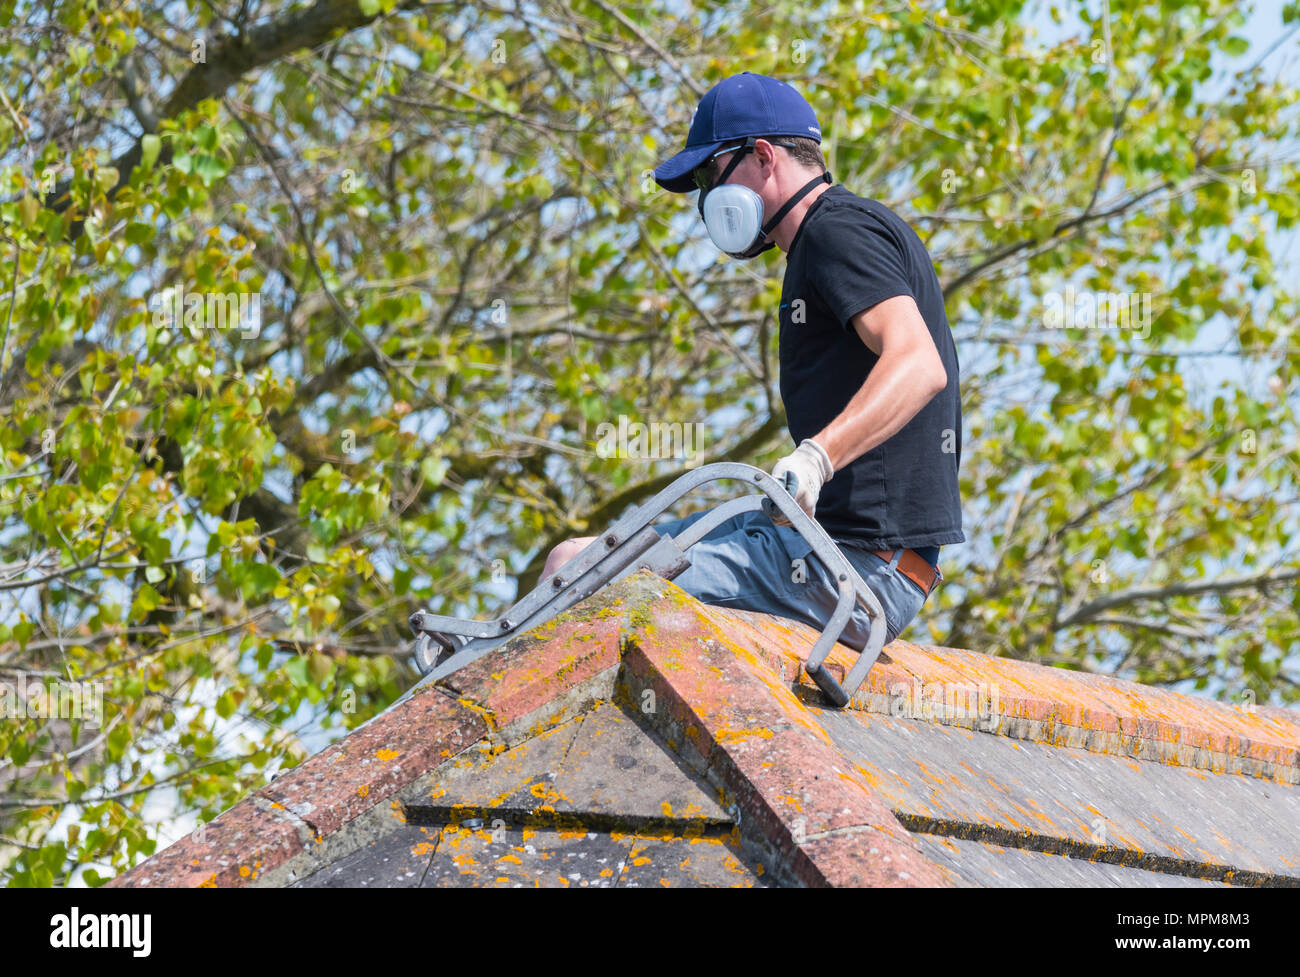 Man spraying a roof while wearing a protective respirator mask, in the UK. - Stock Image